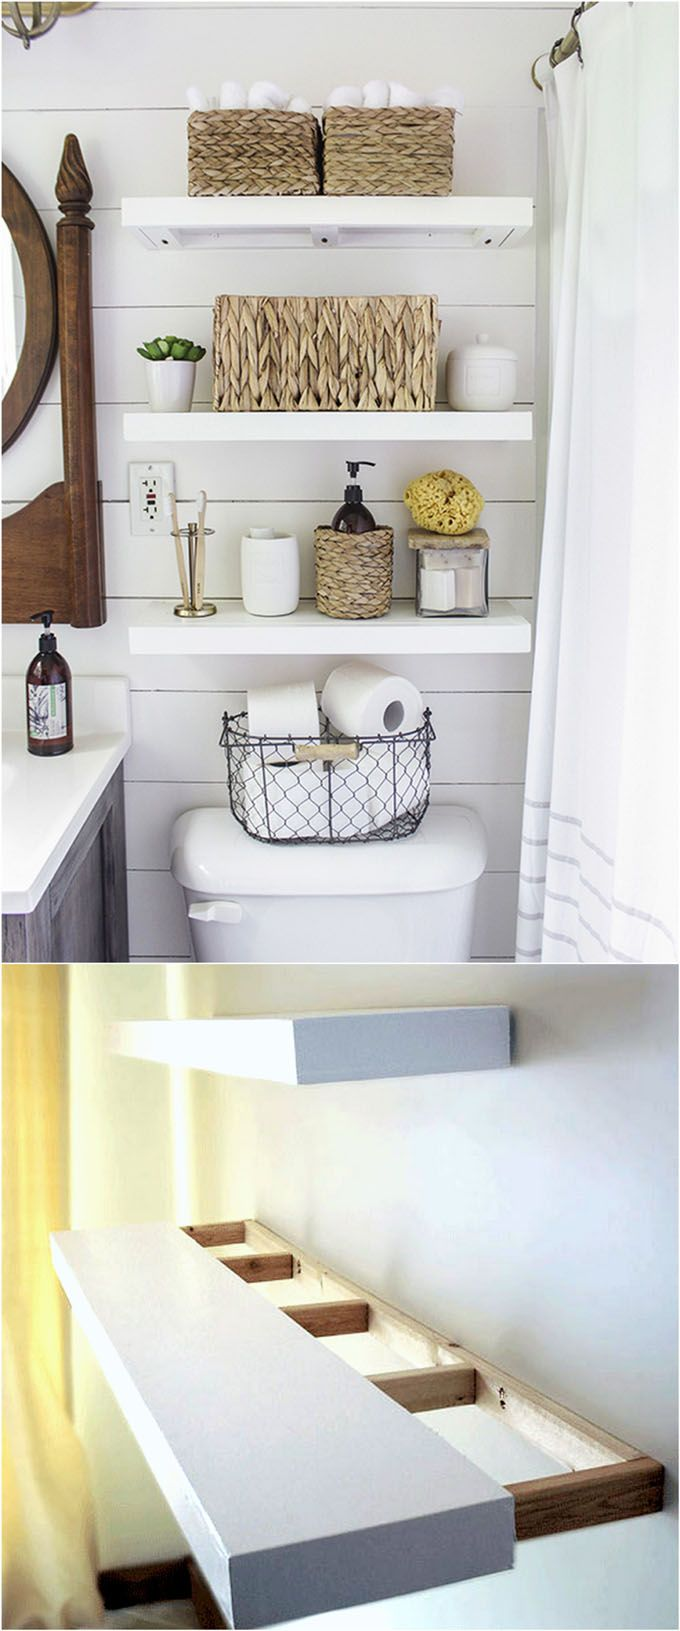 easy and stylish diy floating shelves wall hometalk building tutorials beautiful check out all the gorgeous brackets supports finishes design inspirations shelf table adelaide